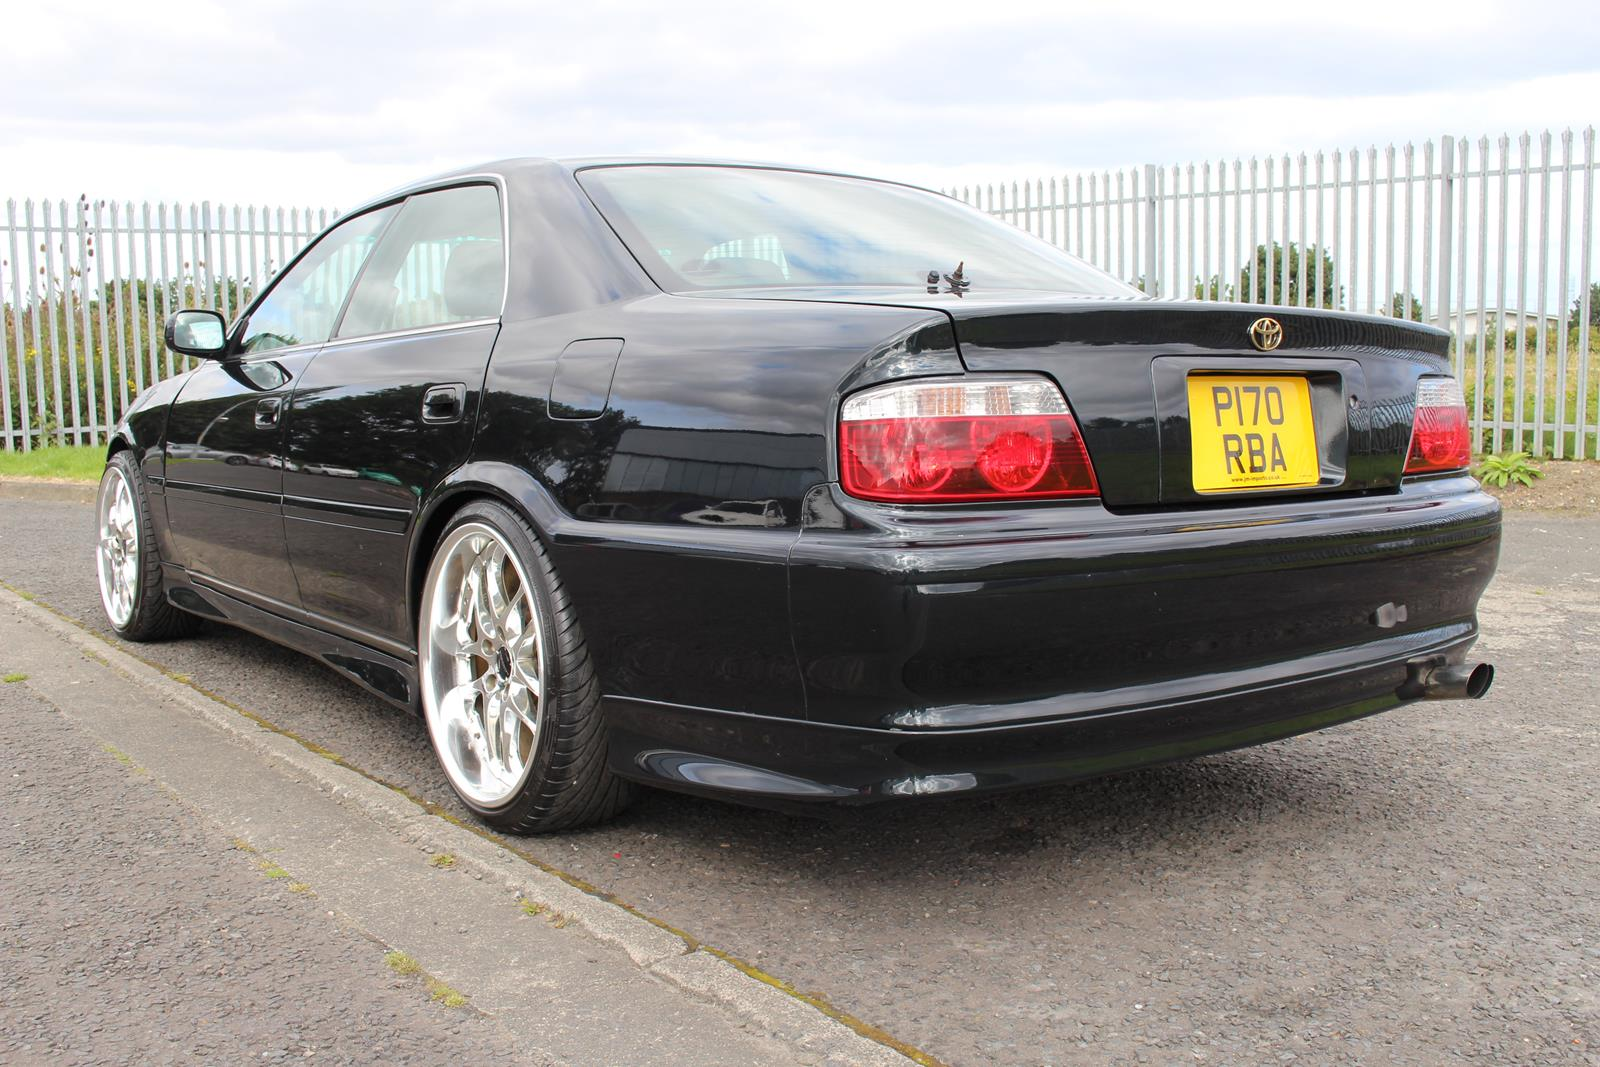 1998 Toyota Chaser Jzx100 5 Speed Manual